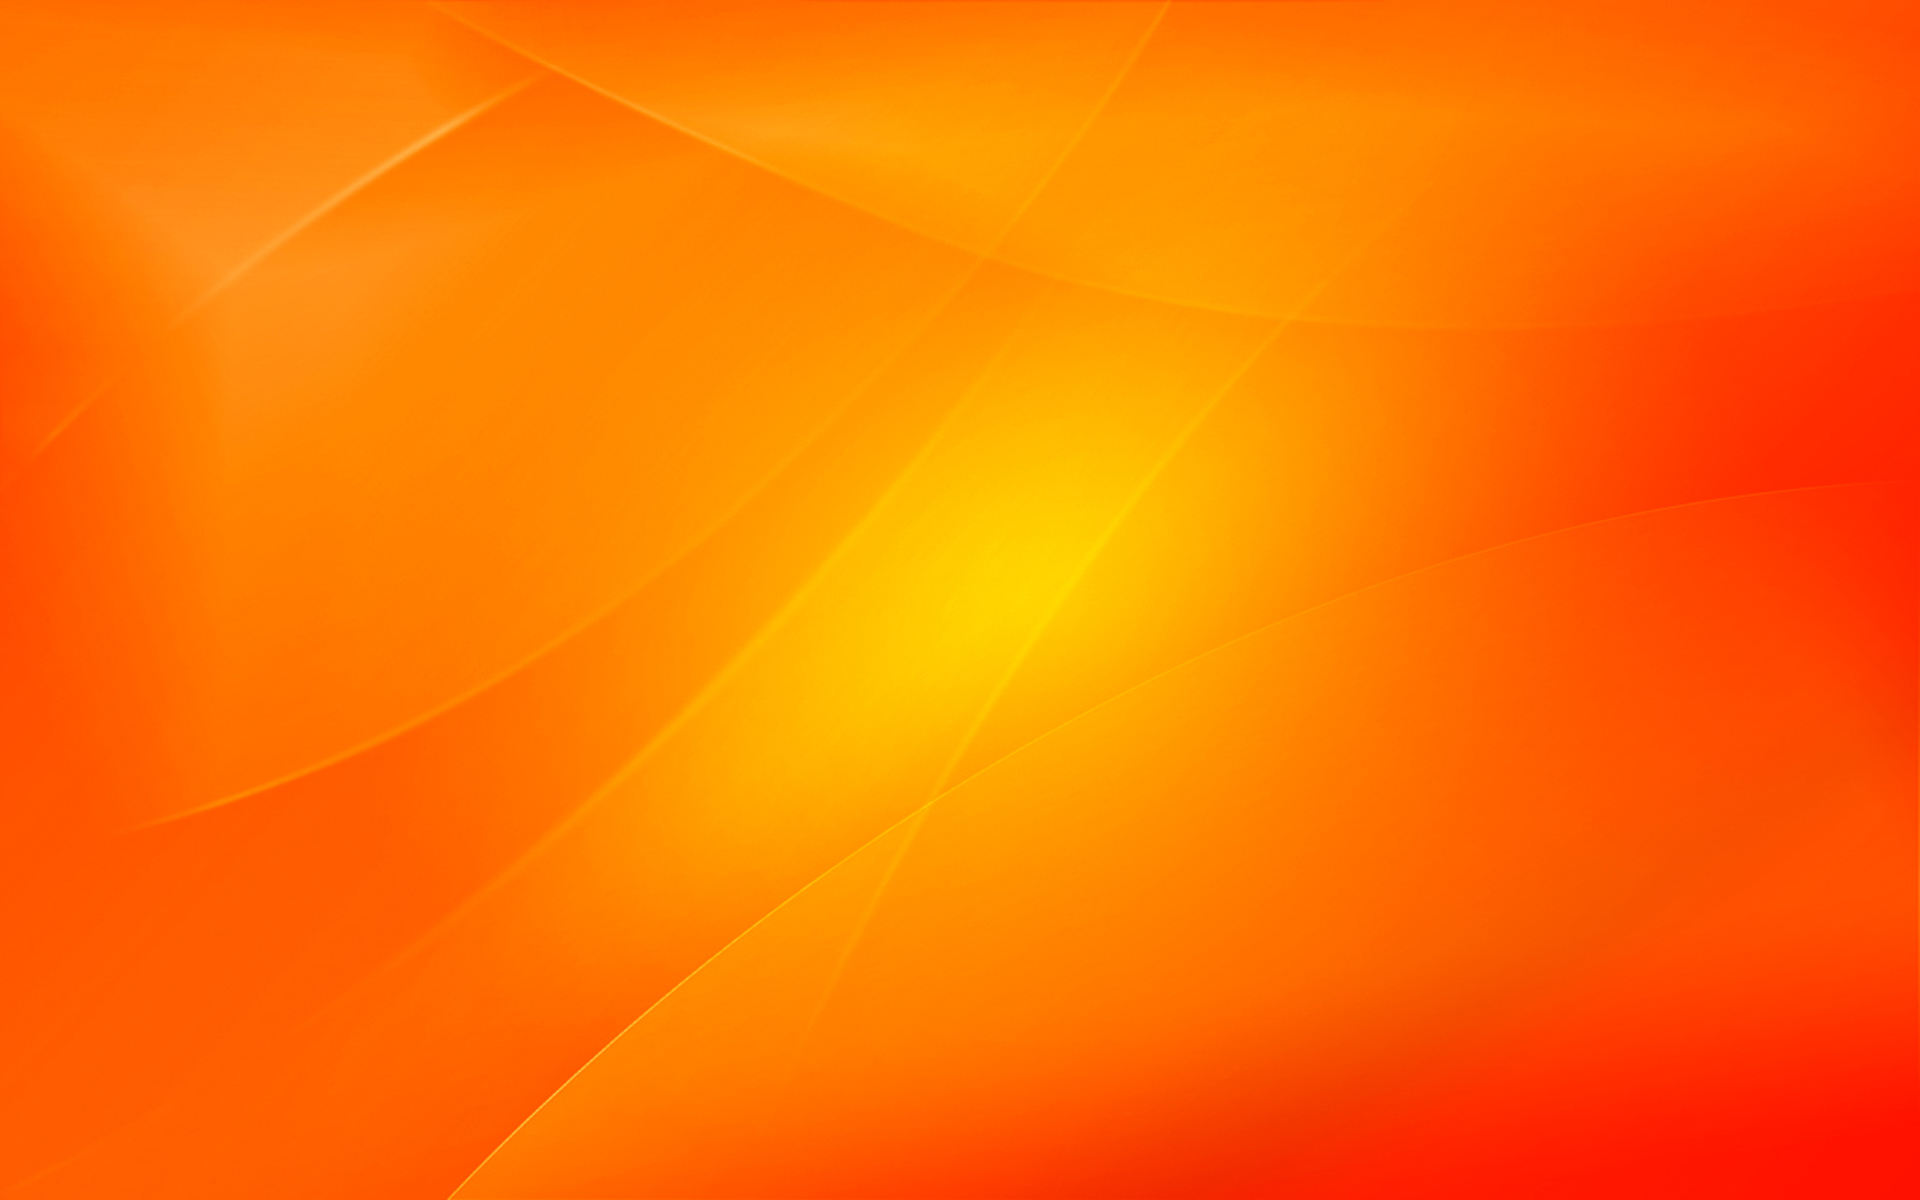 Orange Wallpaper Background 1920x1200